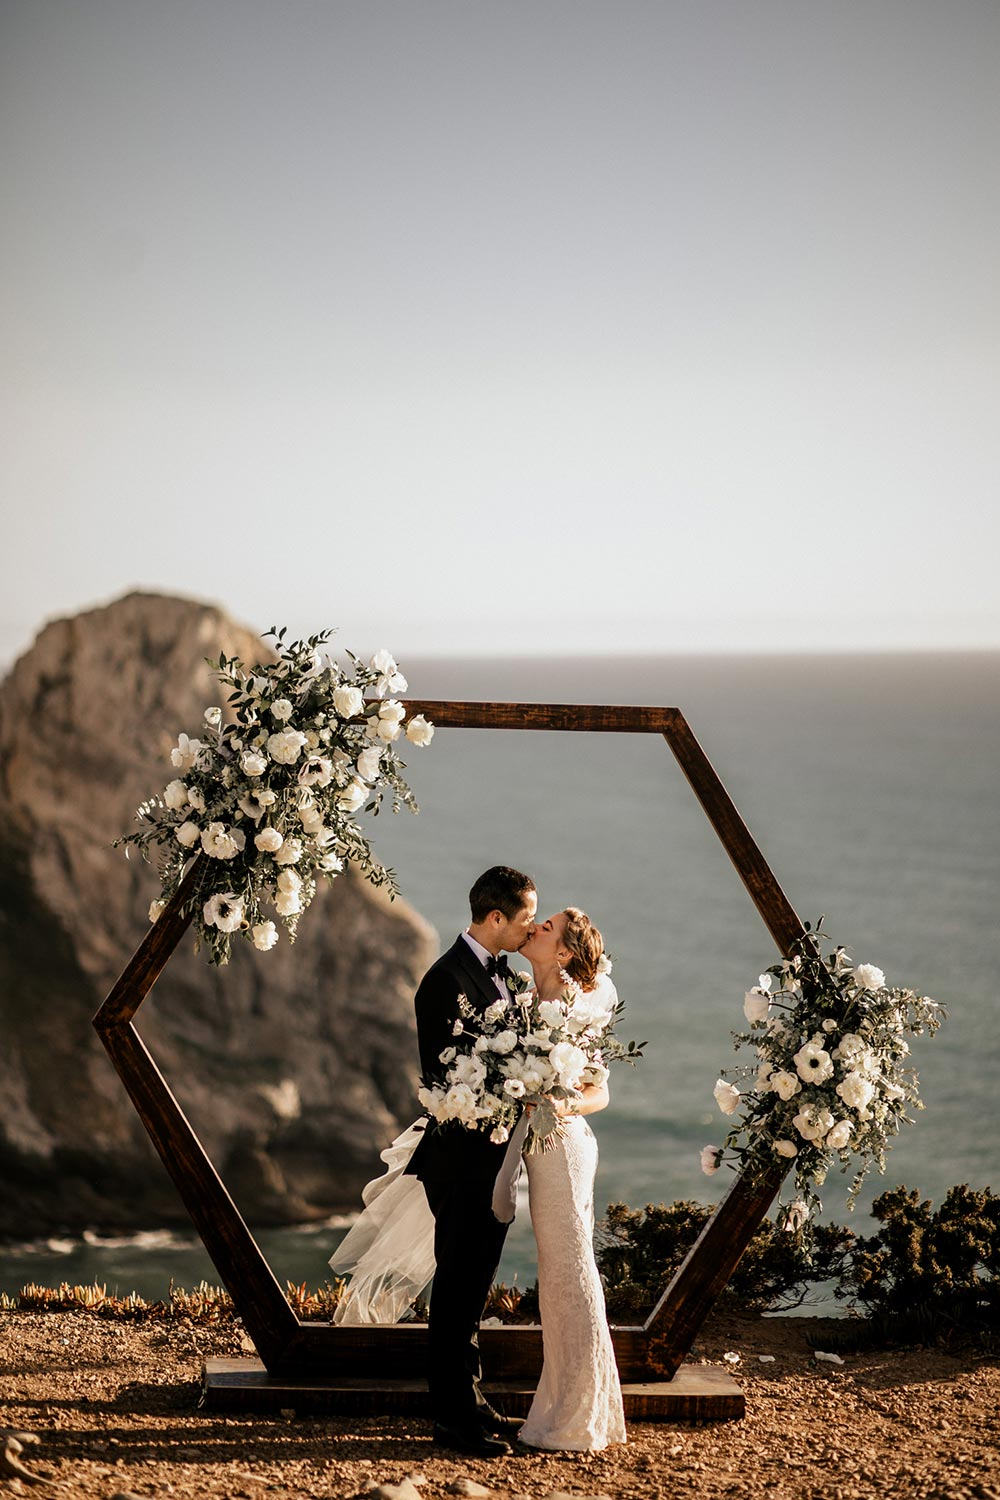 Adventurous Portugal Elopement Atop A Dramatic Cliff ⋆ Ruffled